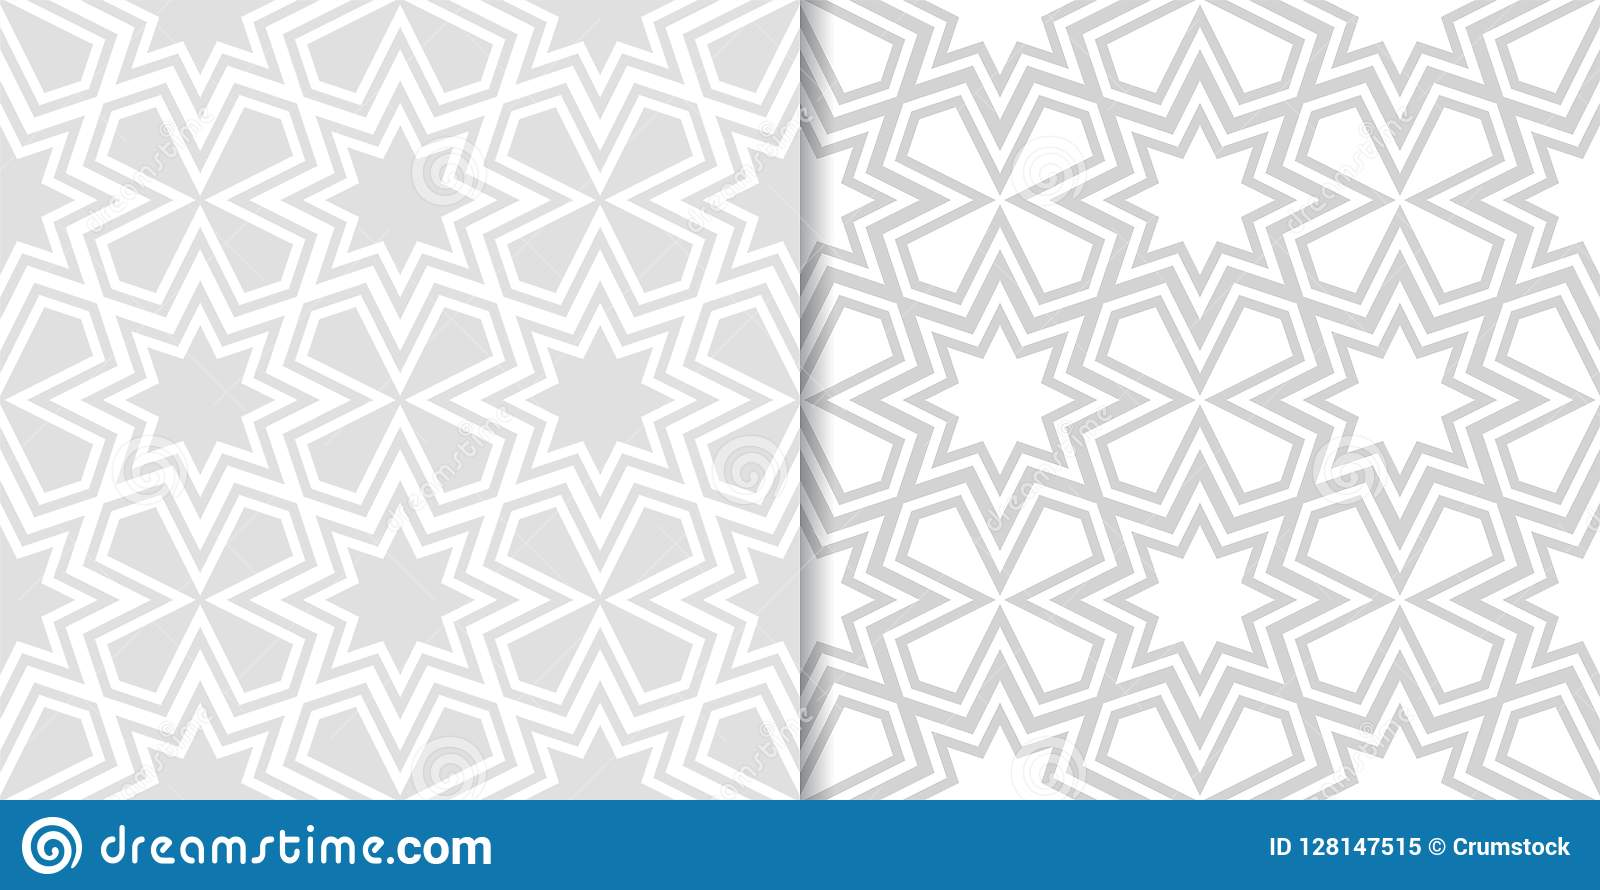 Light gray geometric prints. Set of seamless patterns